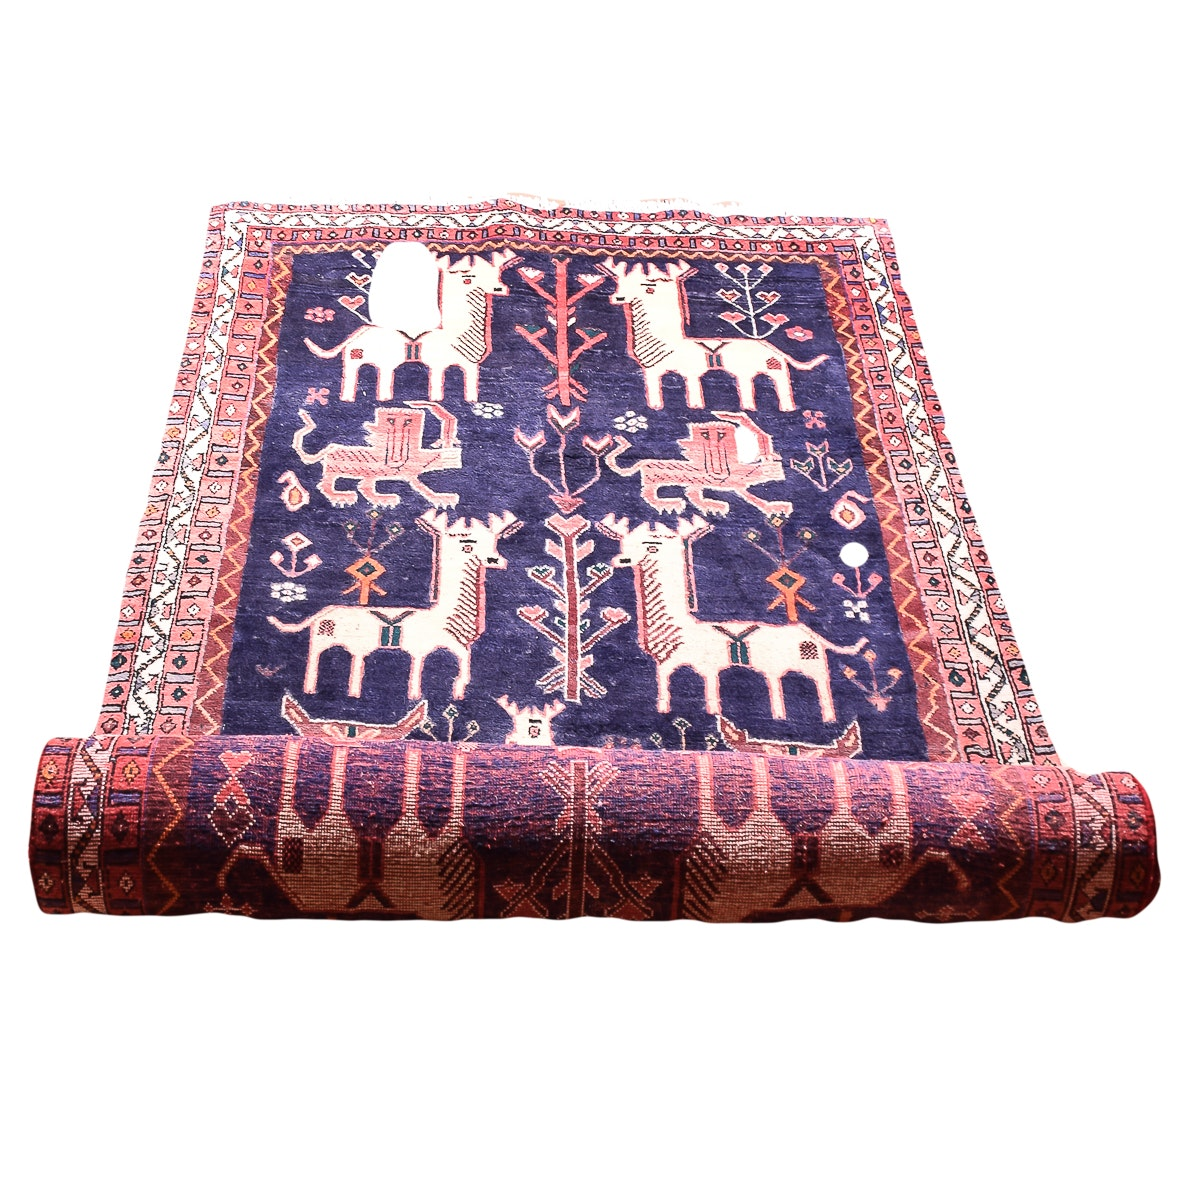 Rugs, Jewelry, Fashion Accessories & More